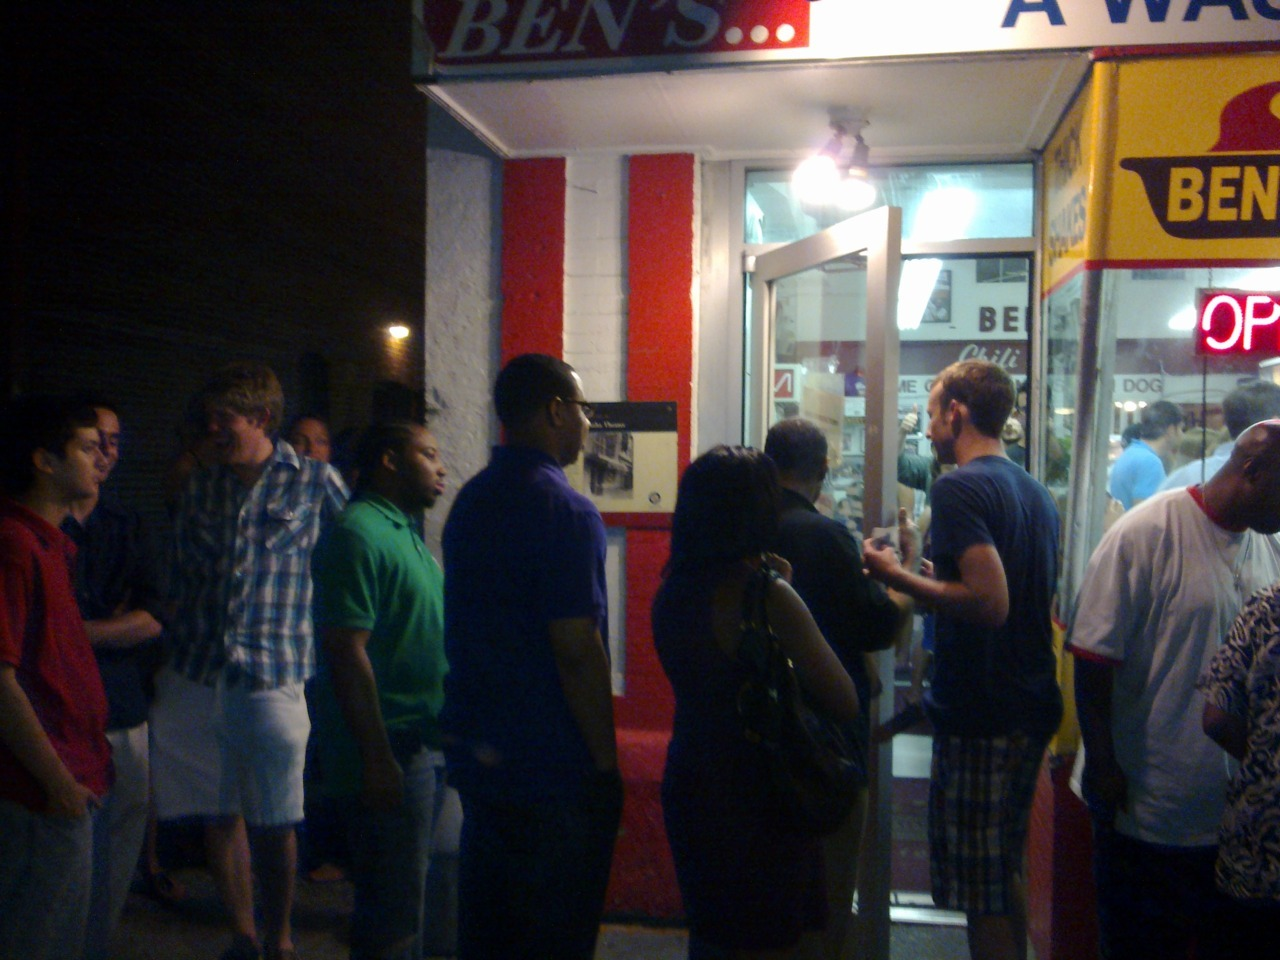 Bens chili bowl